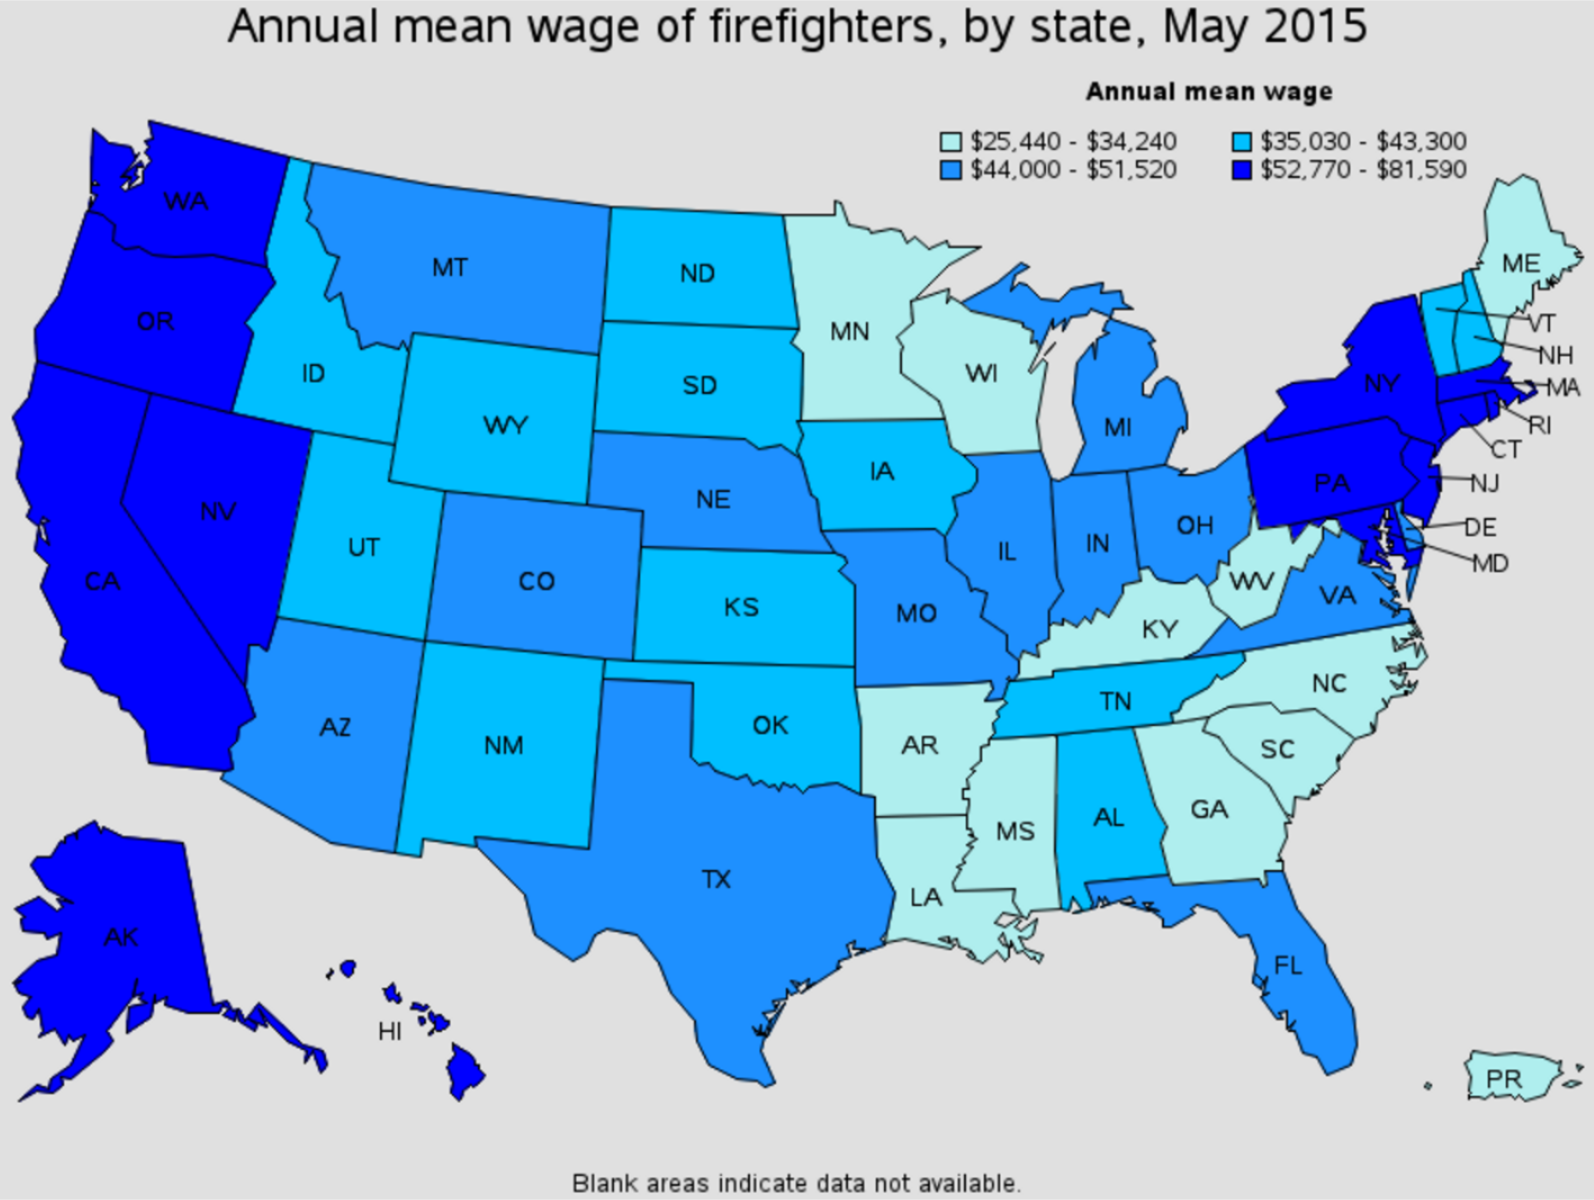 firefighter average salary by state Woodbine Maryland